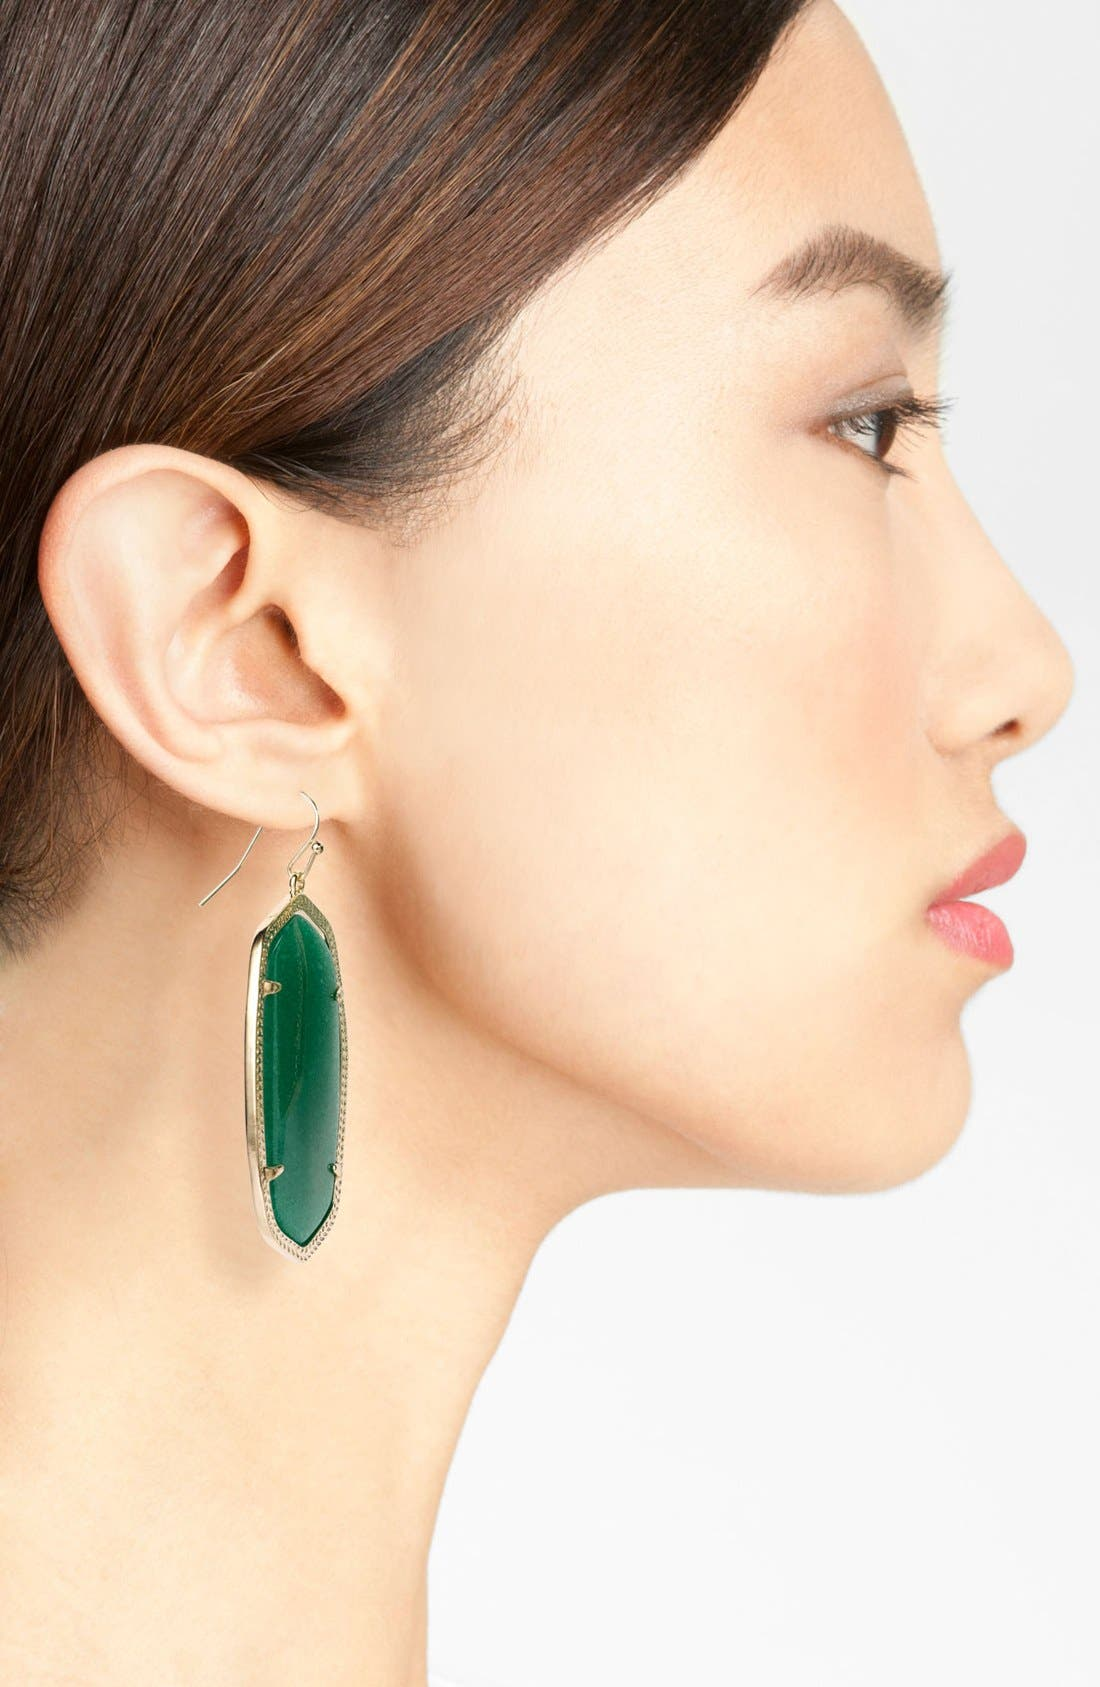 Danielle - Large Oval Statement Earrings,                             Alternate thumbnail 142, color,